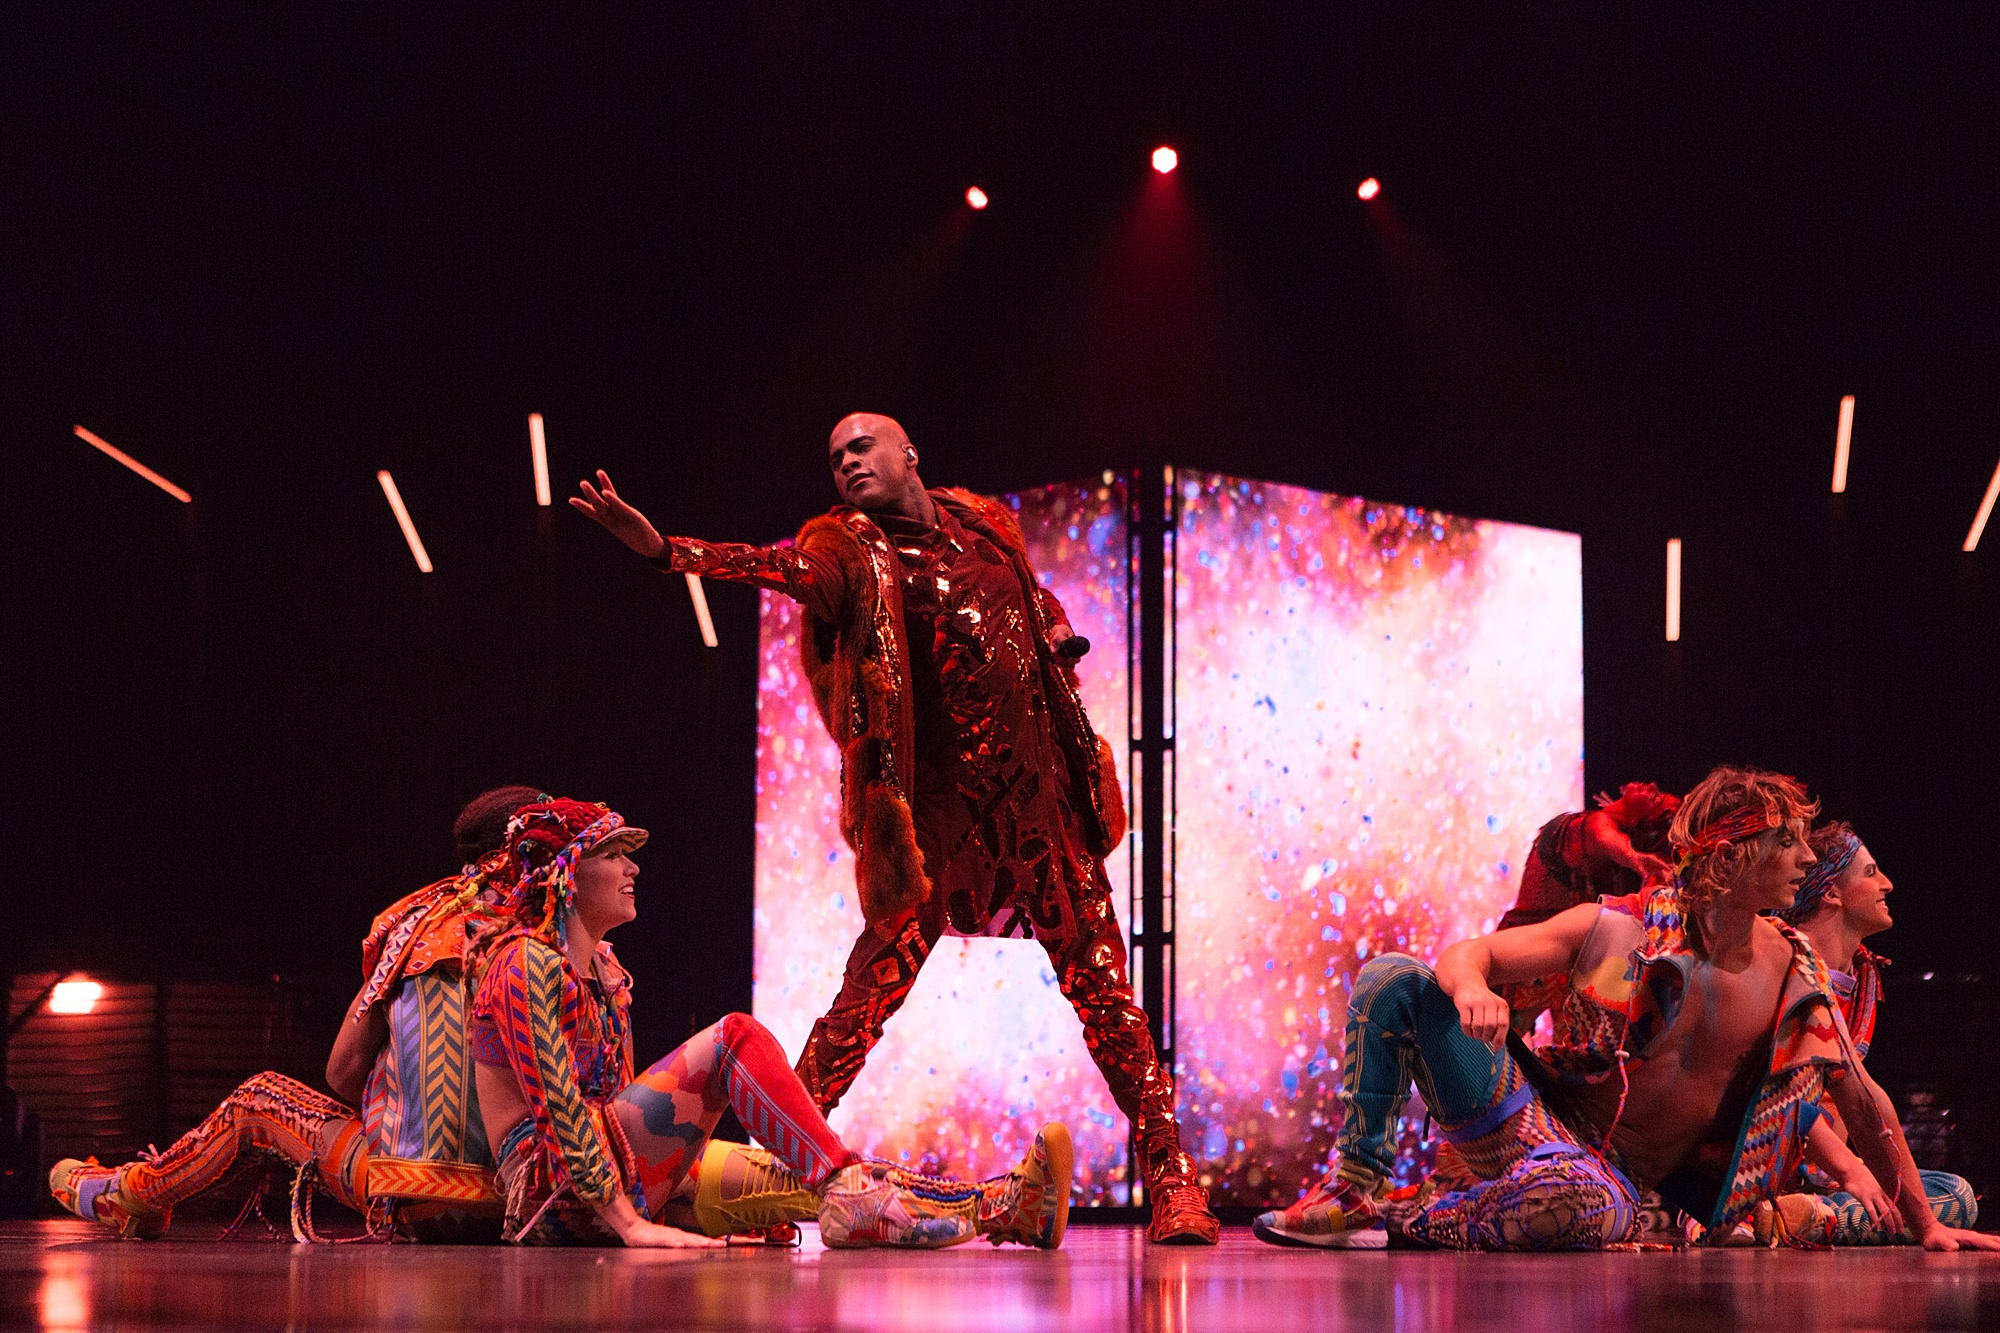 Joe_Mac_Creative_cirque_du_soleil_volta_Greater Philadelphia_Expo_Center_Oaks_PA_Visit_Valley _Forge_0013.jpg